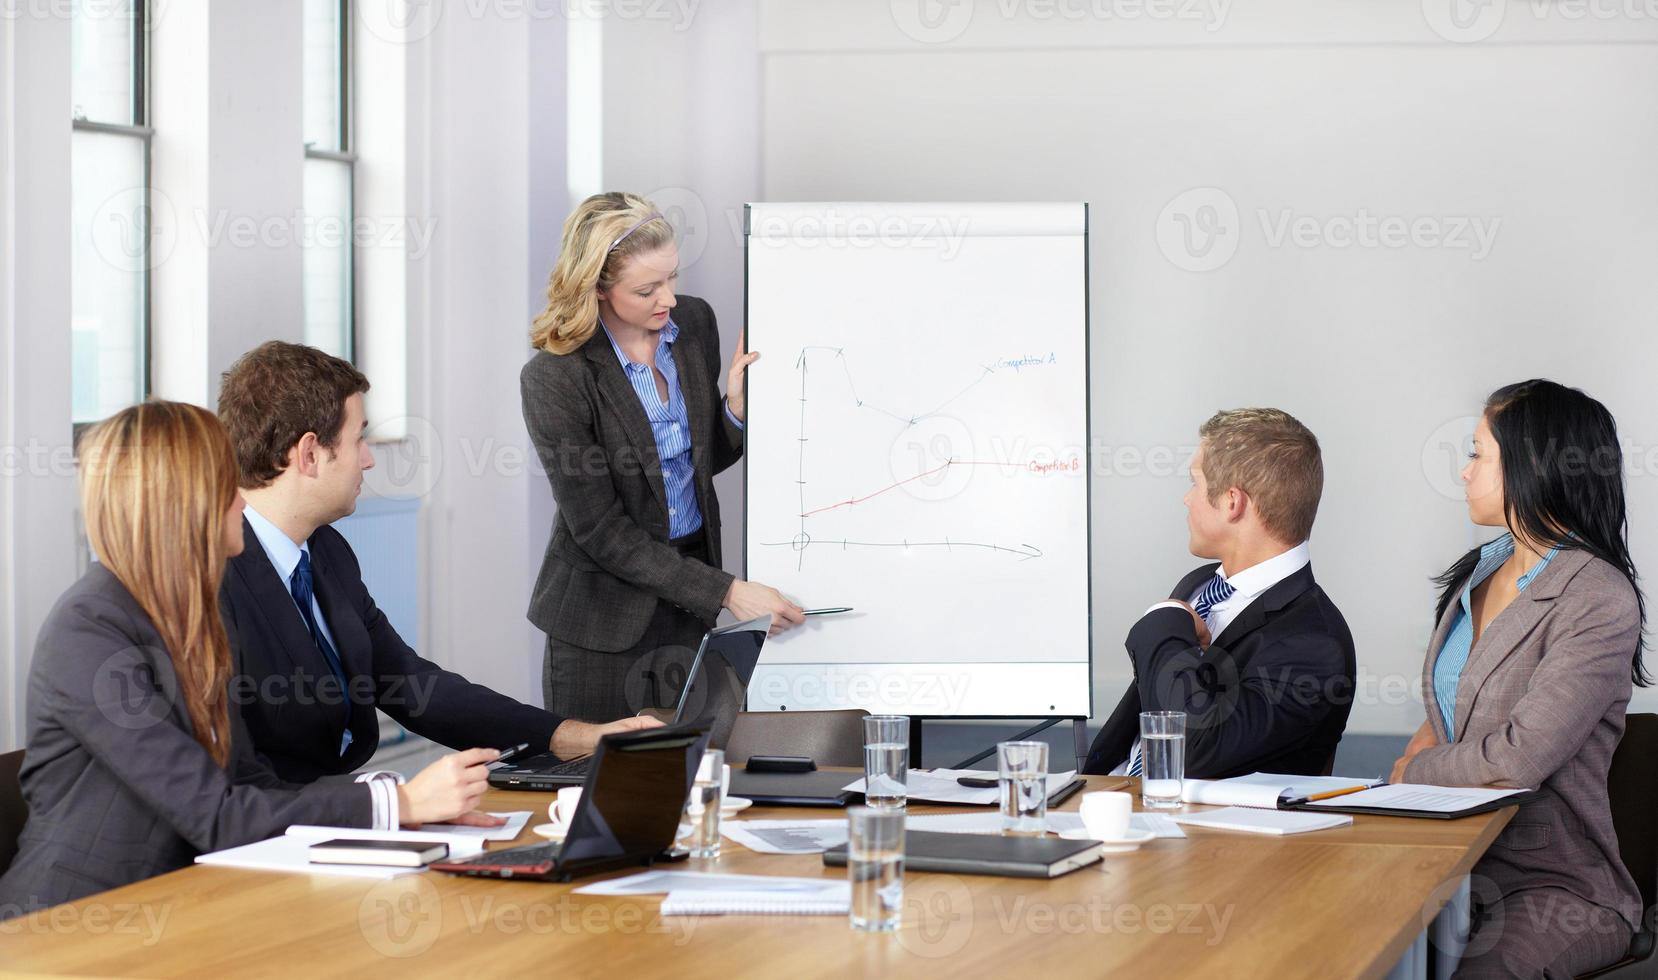 Blonde female present graph on flipchart during business meeting photo